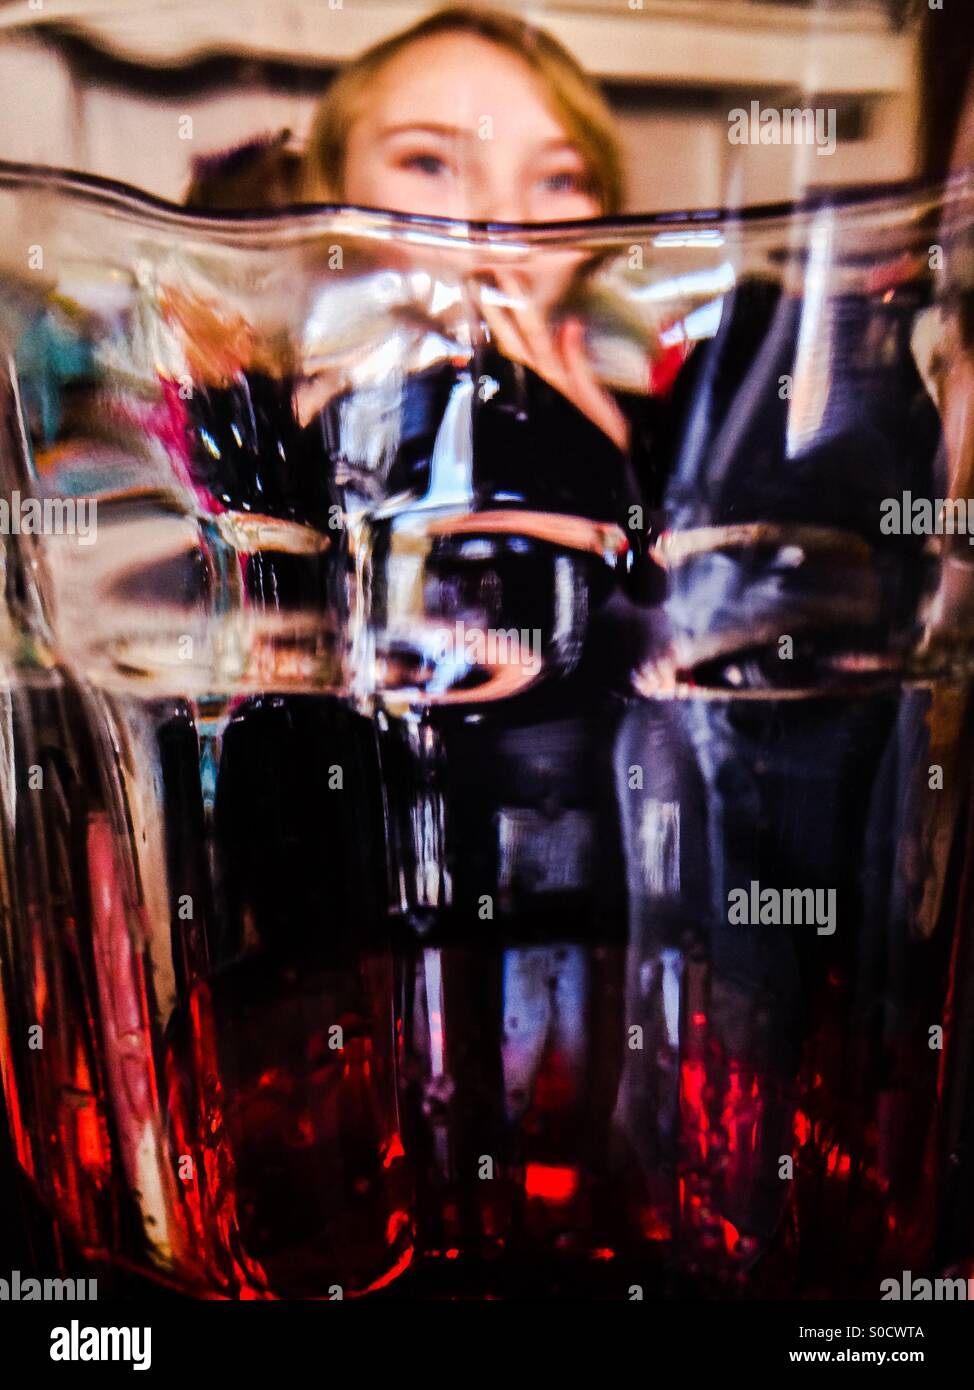 Drink up your juice - Stock Image